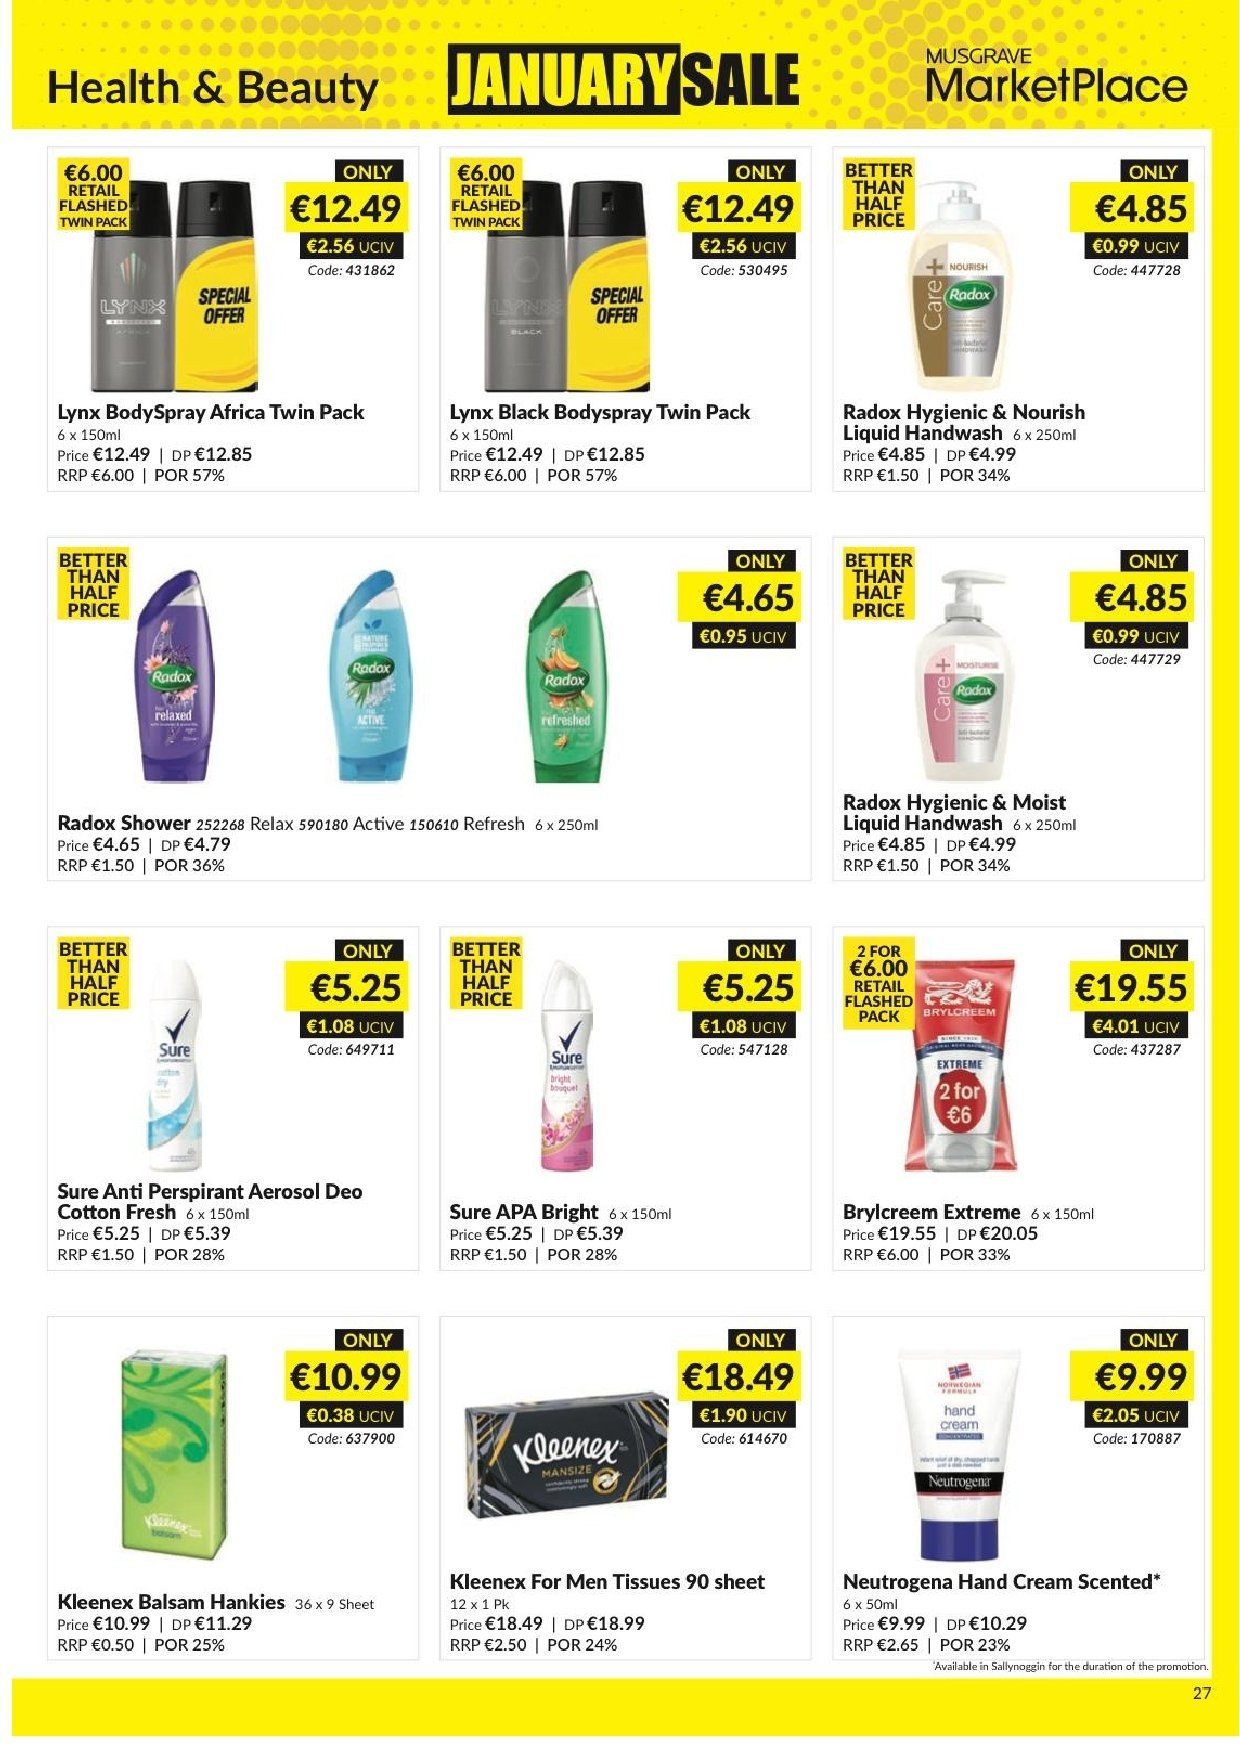 MUSGRAVE Market Place offer  - 23.12.2018 - 19.1.2019 - Sales products - tissues. Page 24.